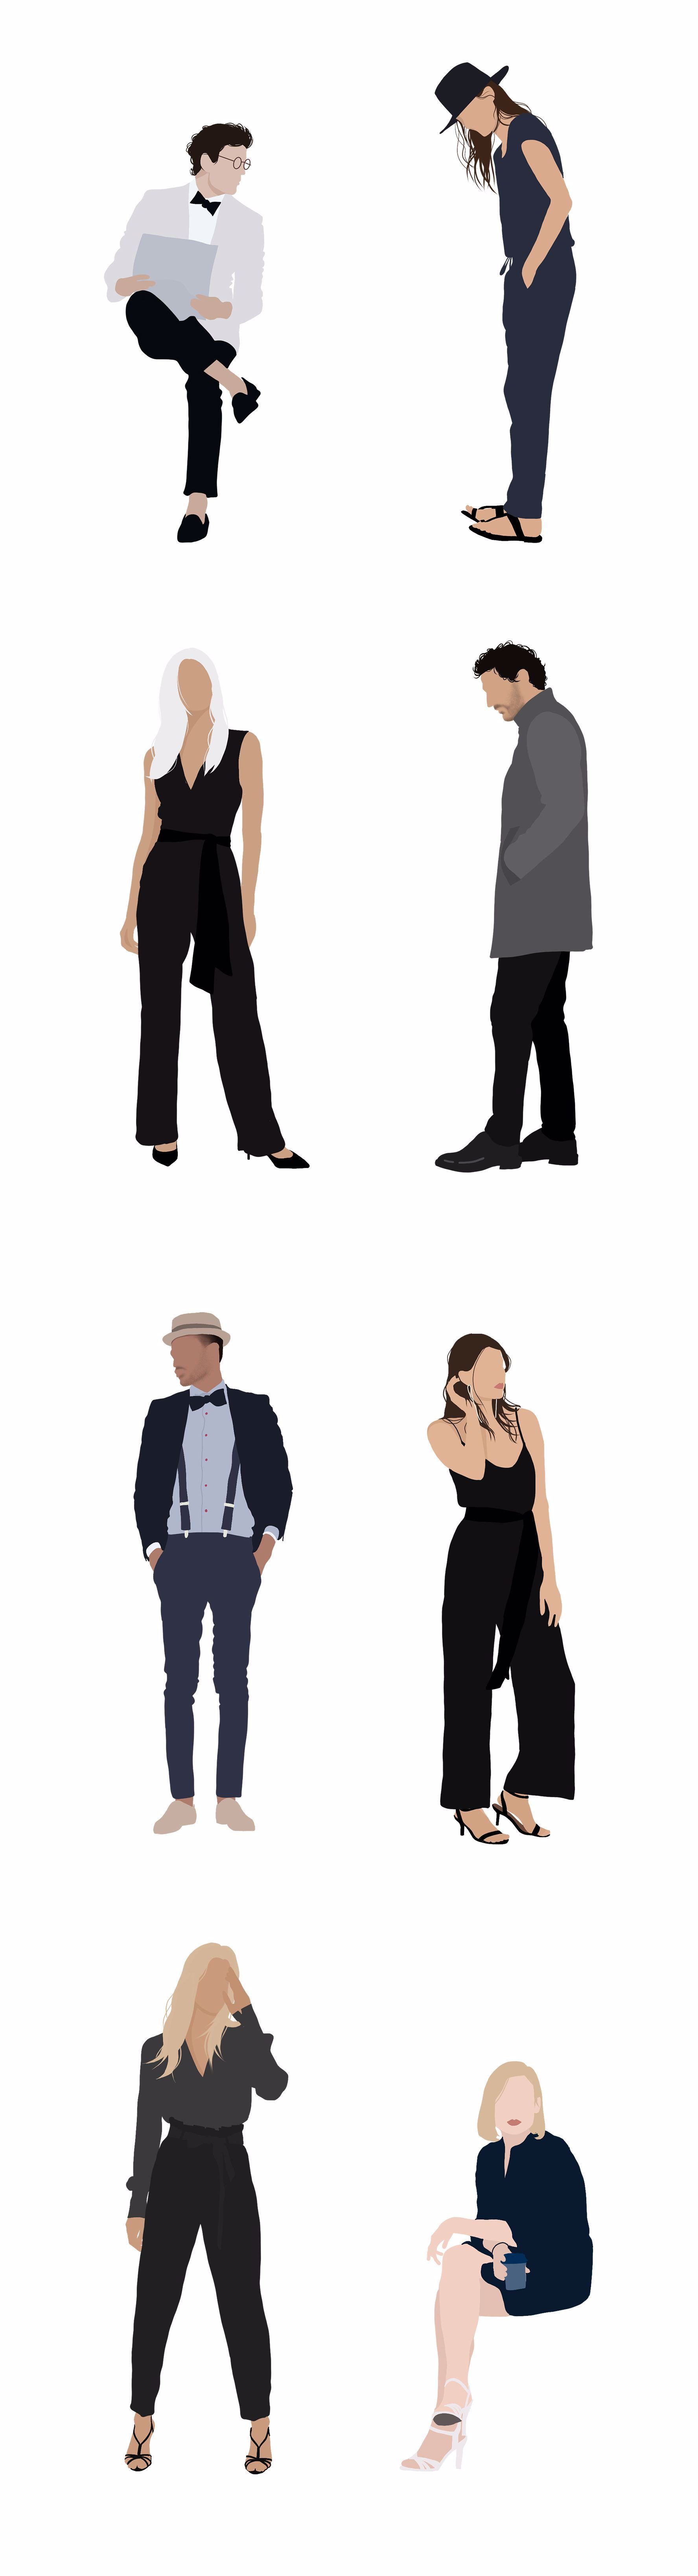 Pin By Alexandra Kautzer On Make Up People Illustration People Png Person Silhouette